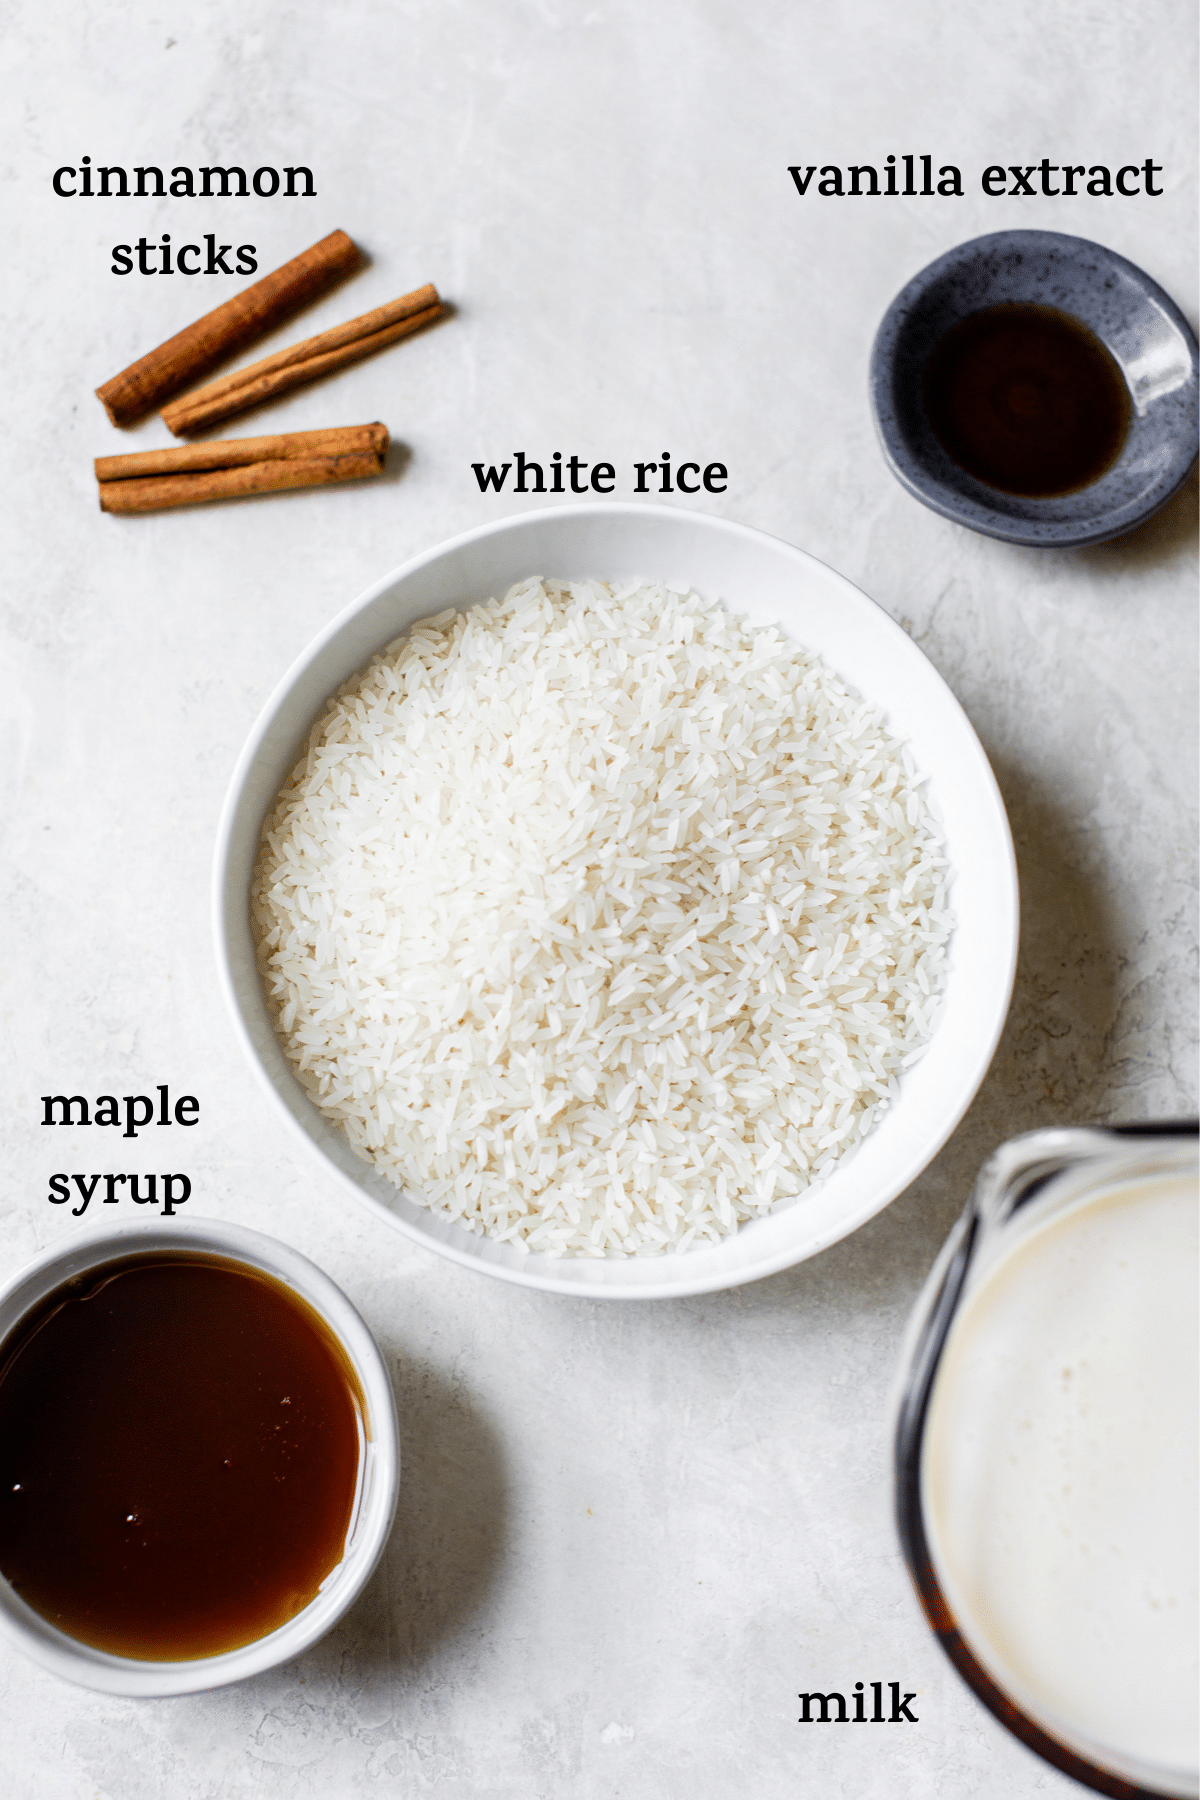 arroz con leche ingredients with text overlay